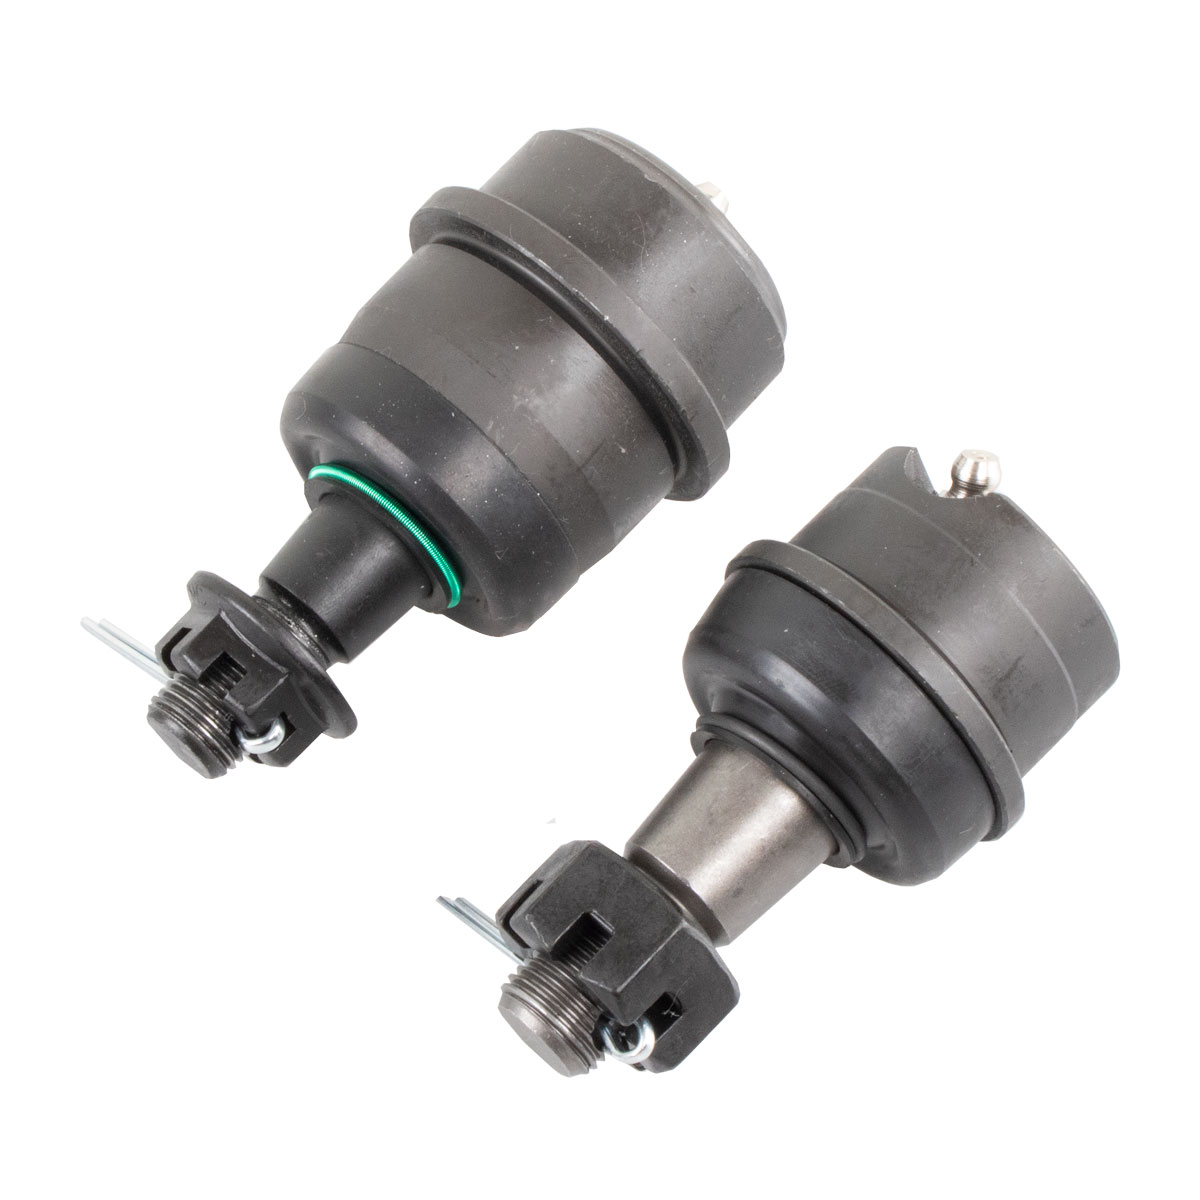 Synergy Manufacturing Non-Knurled HD Ball Joints - Set of 2 - JK/WJ